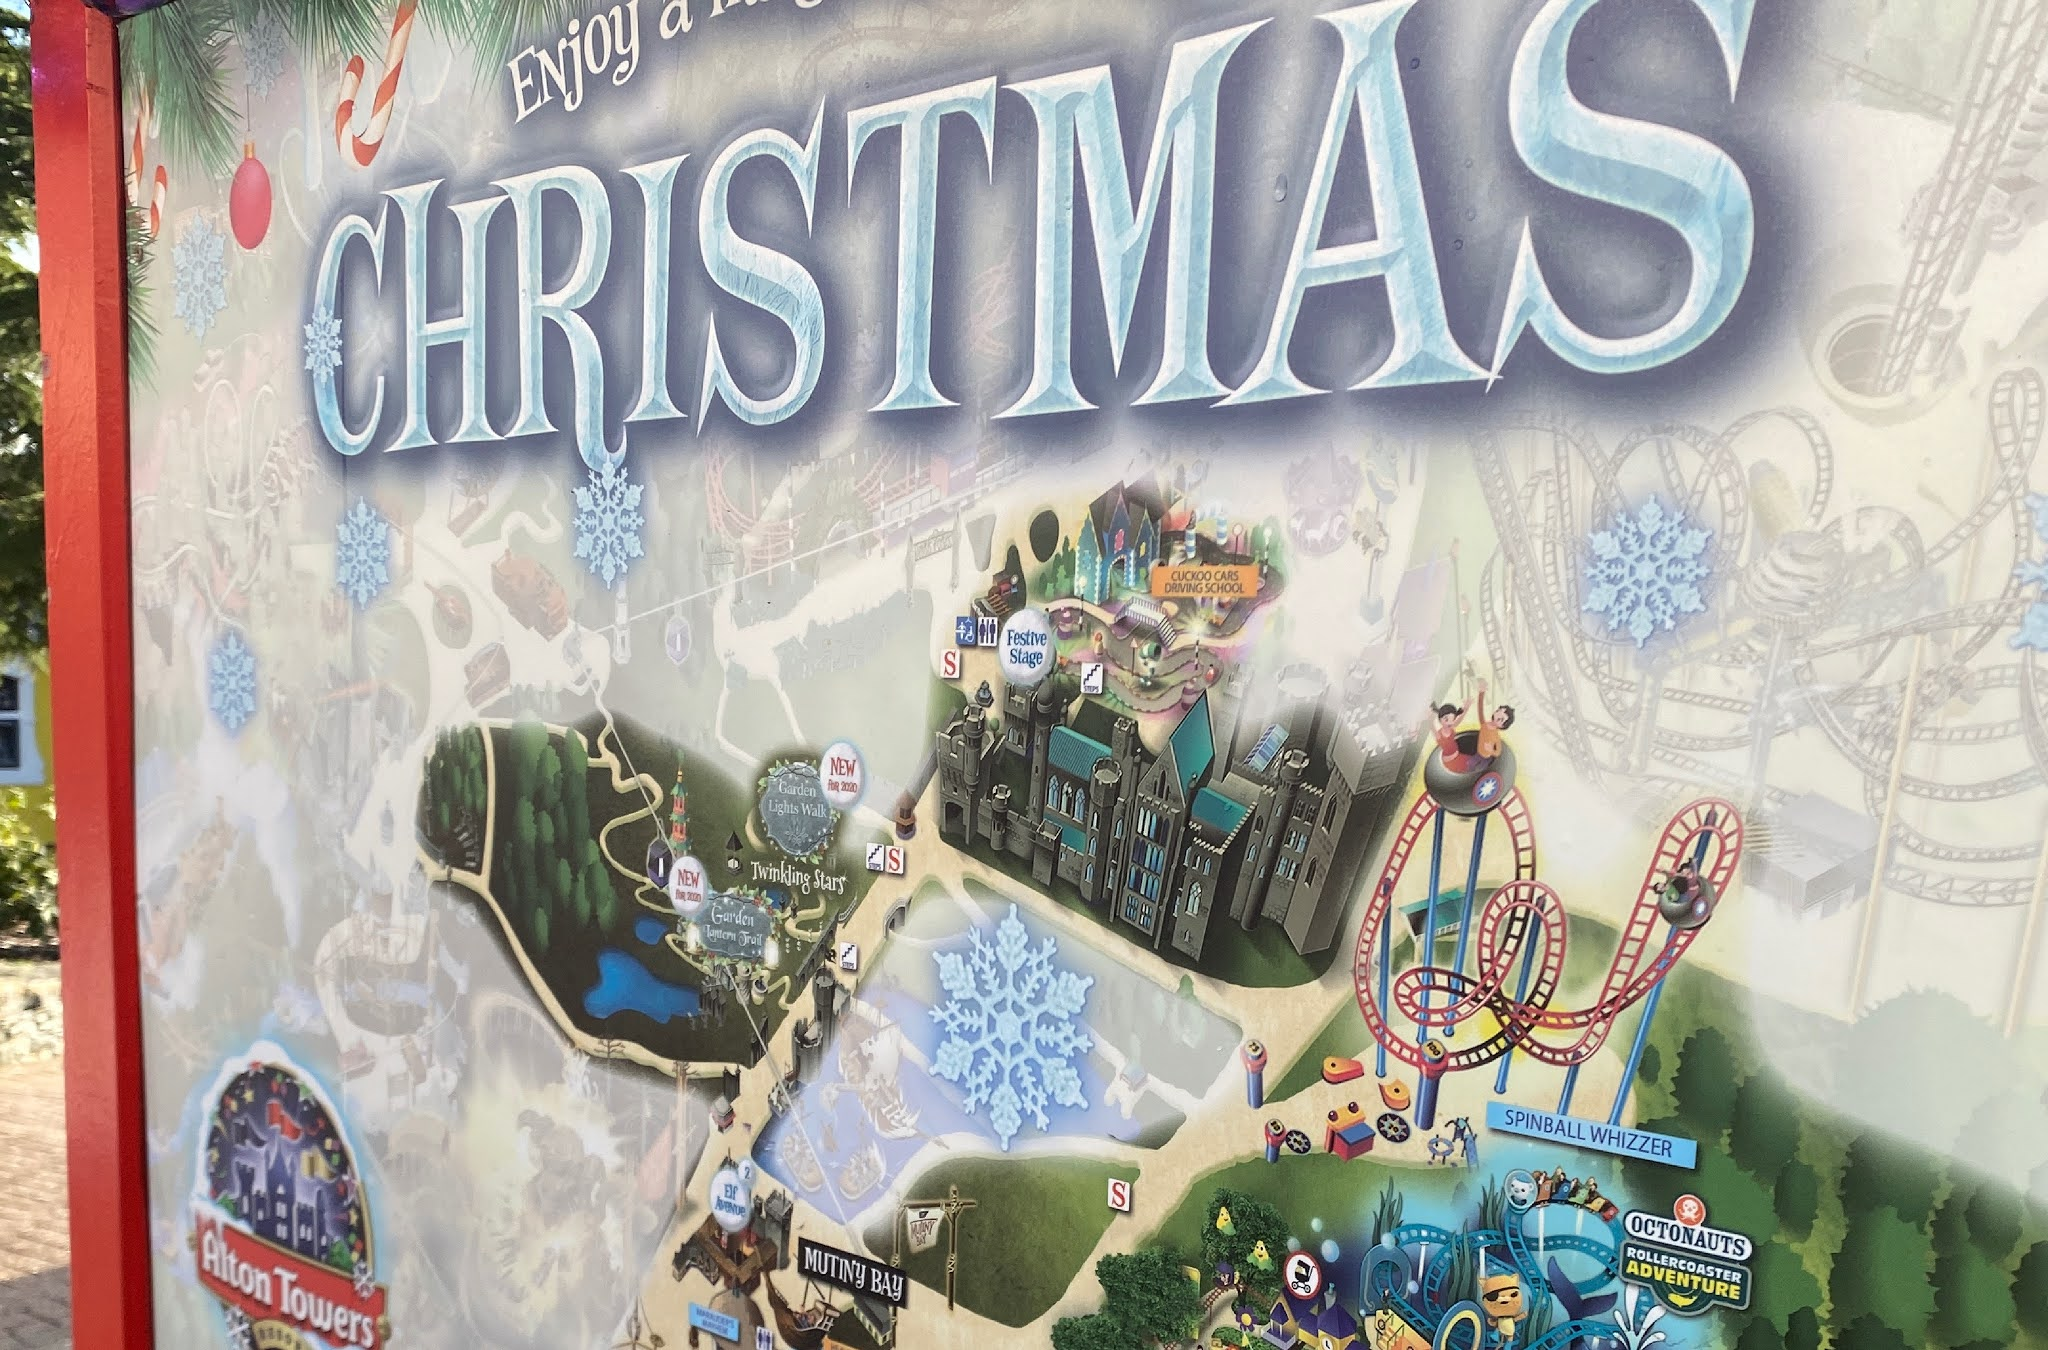 Christmas at Alton Towers